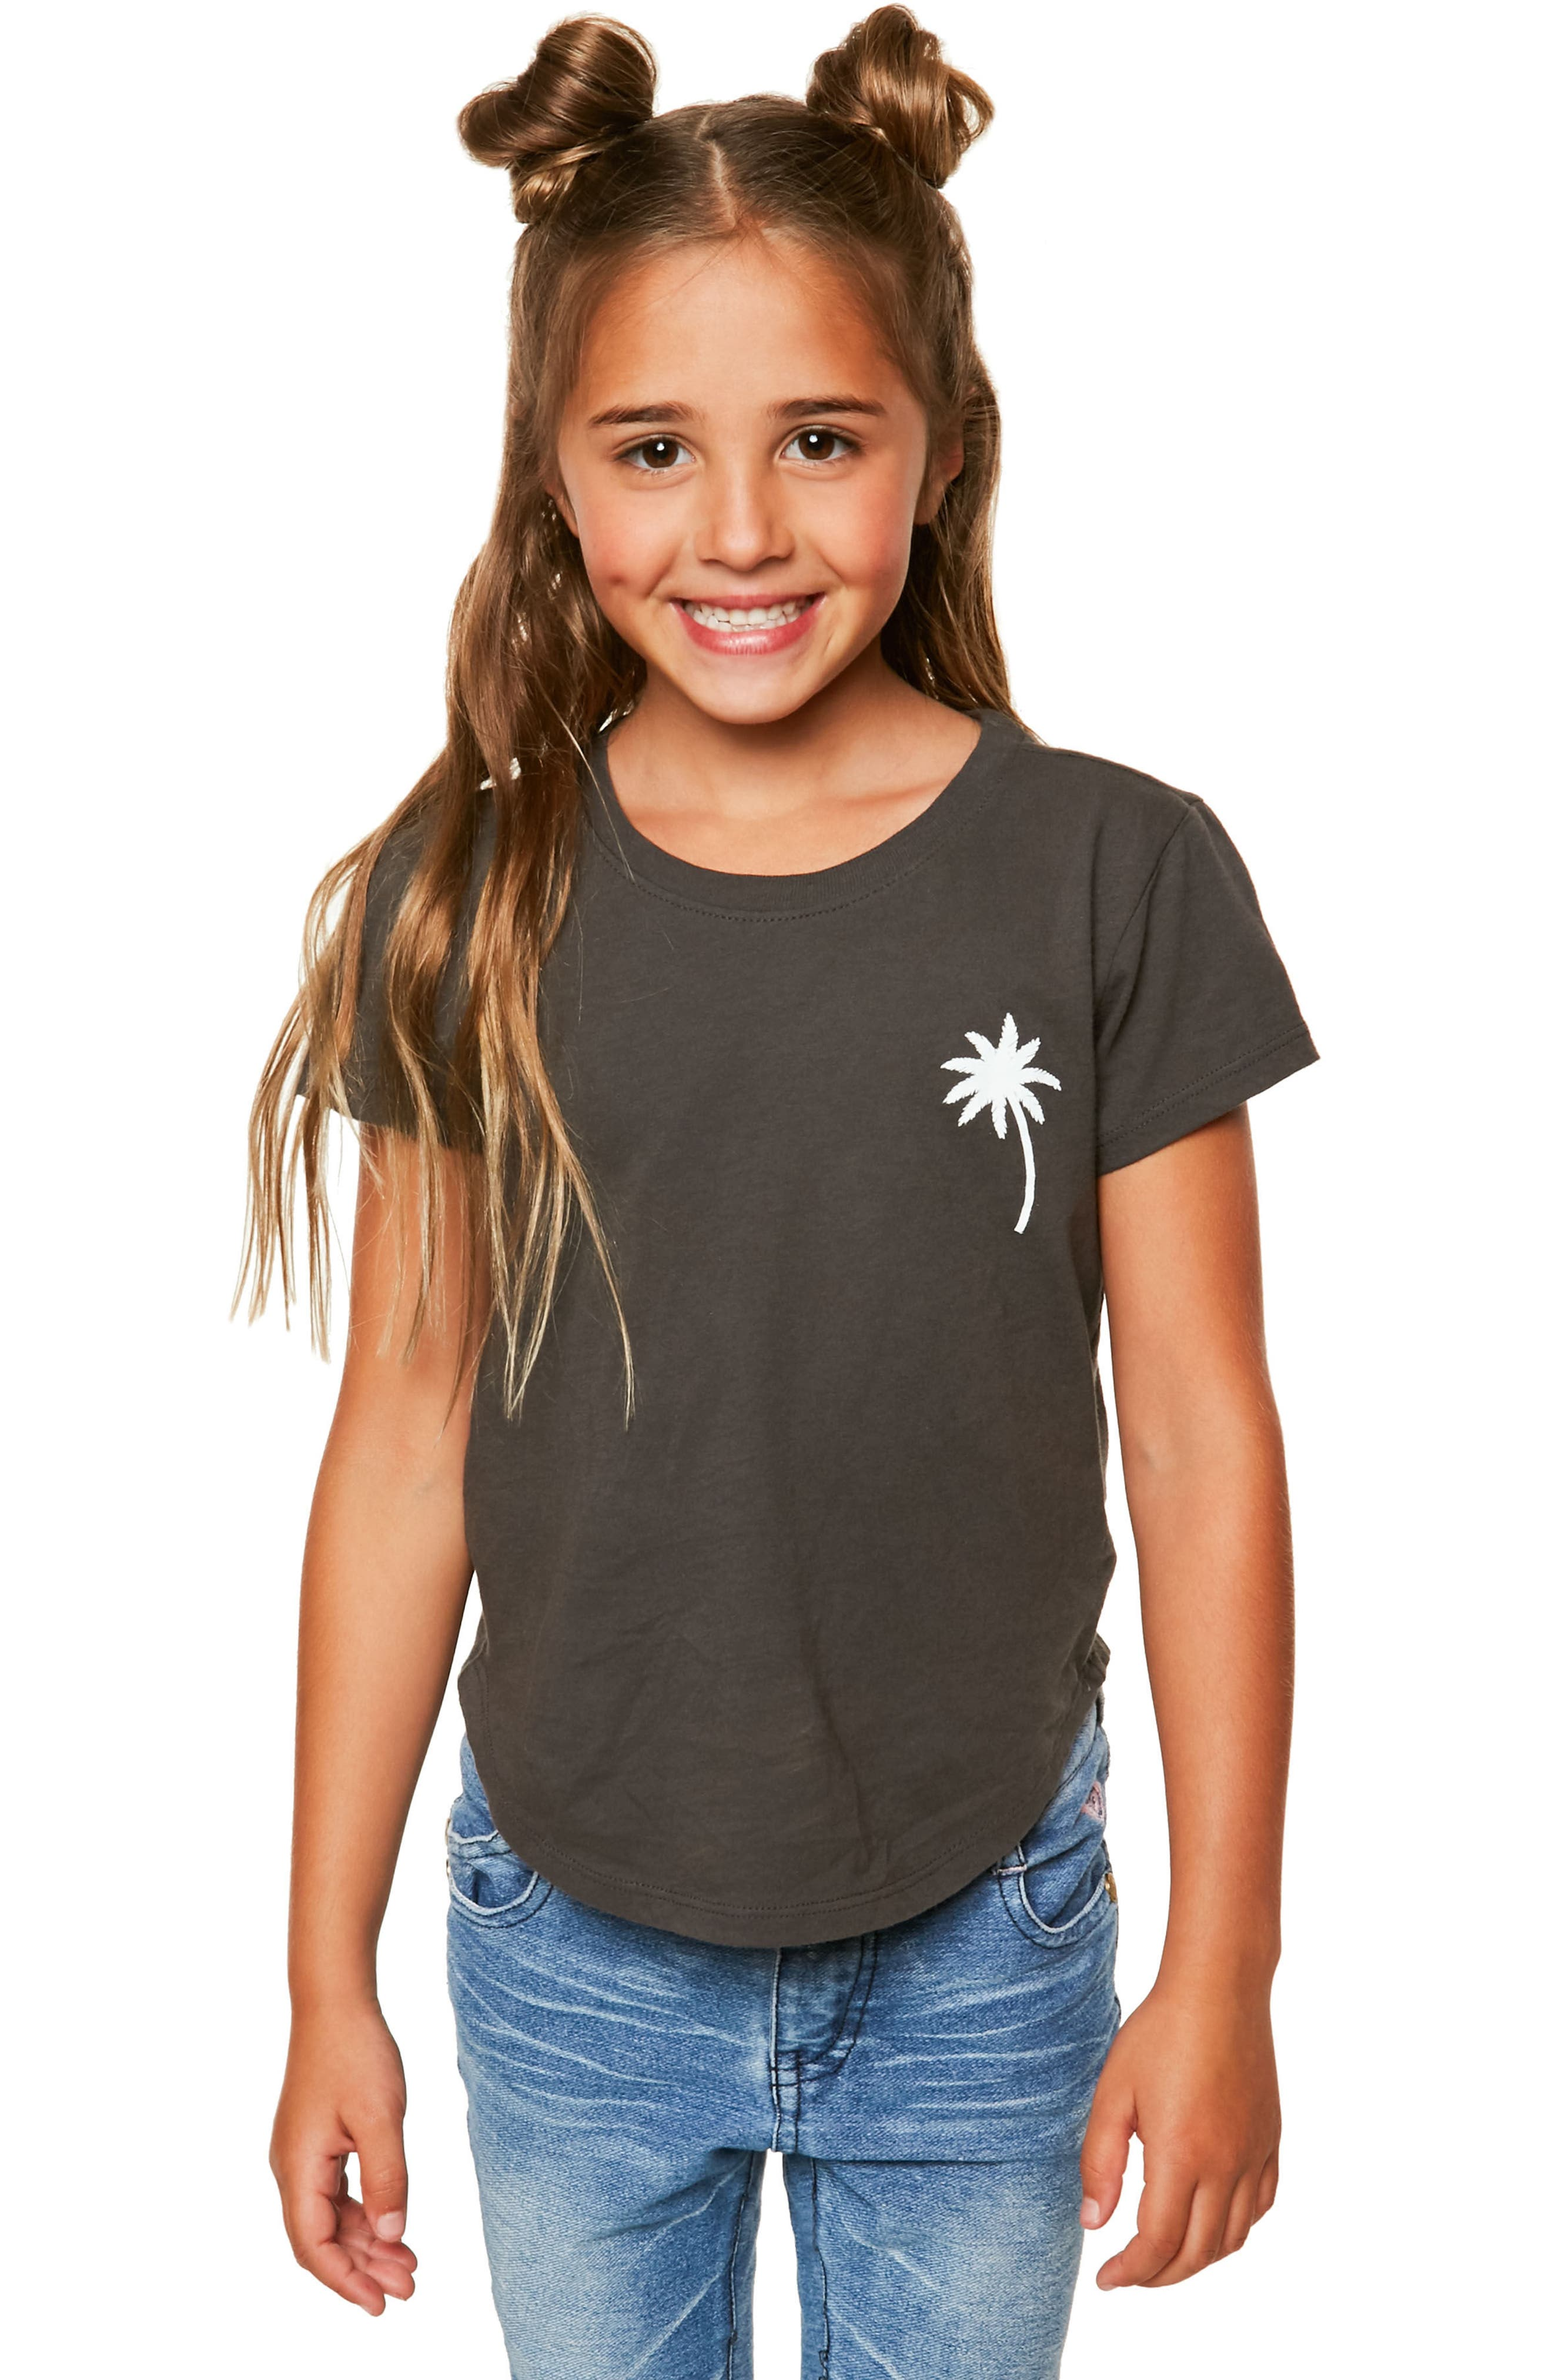 Sunup Graphic Print Tee,                         Main,                         color, Washed Black - Fad